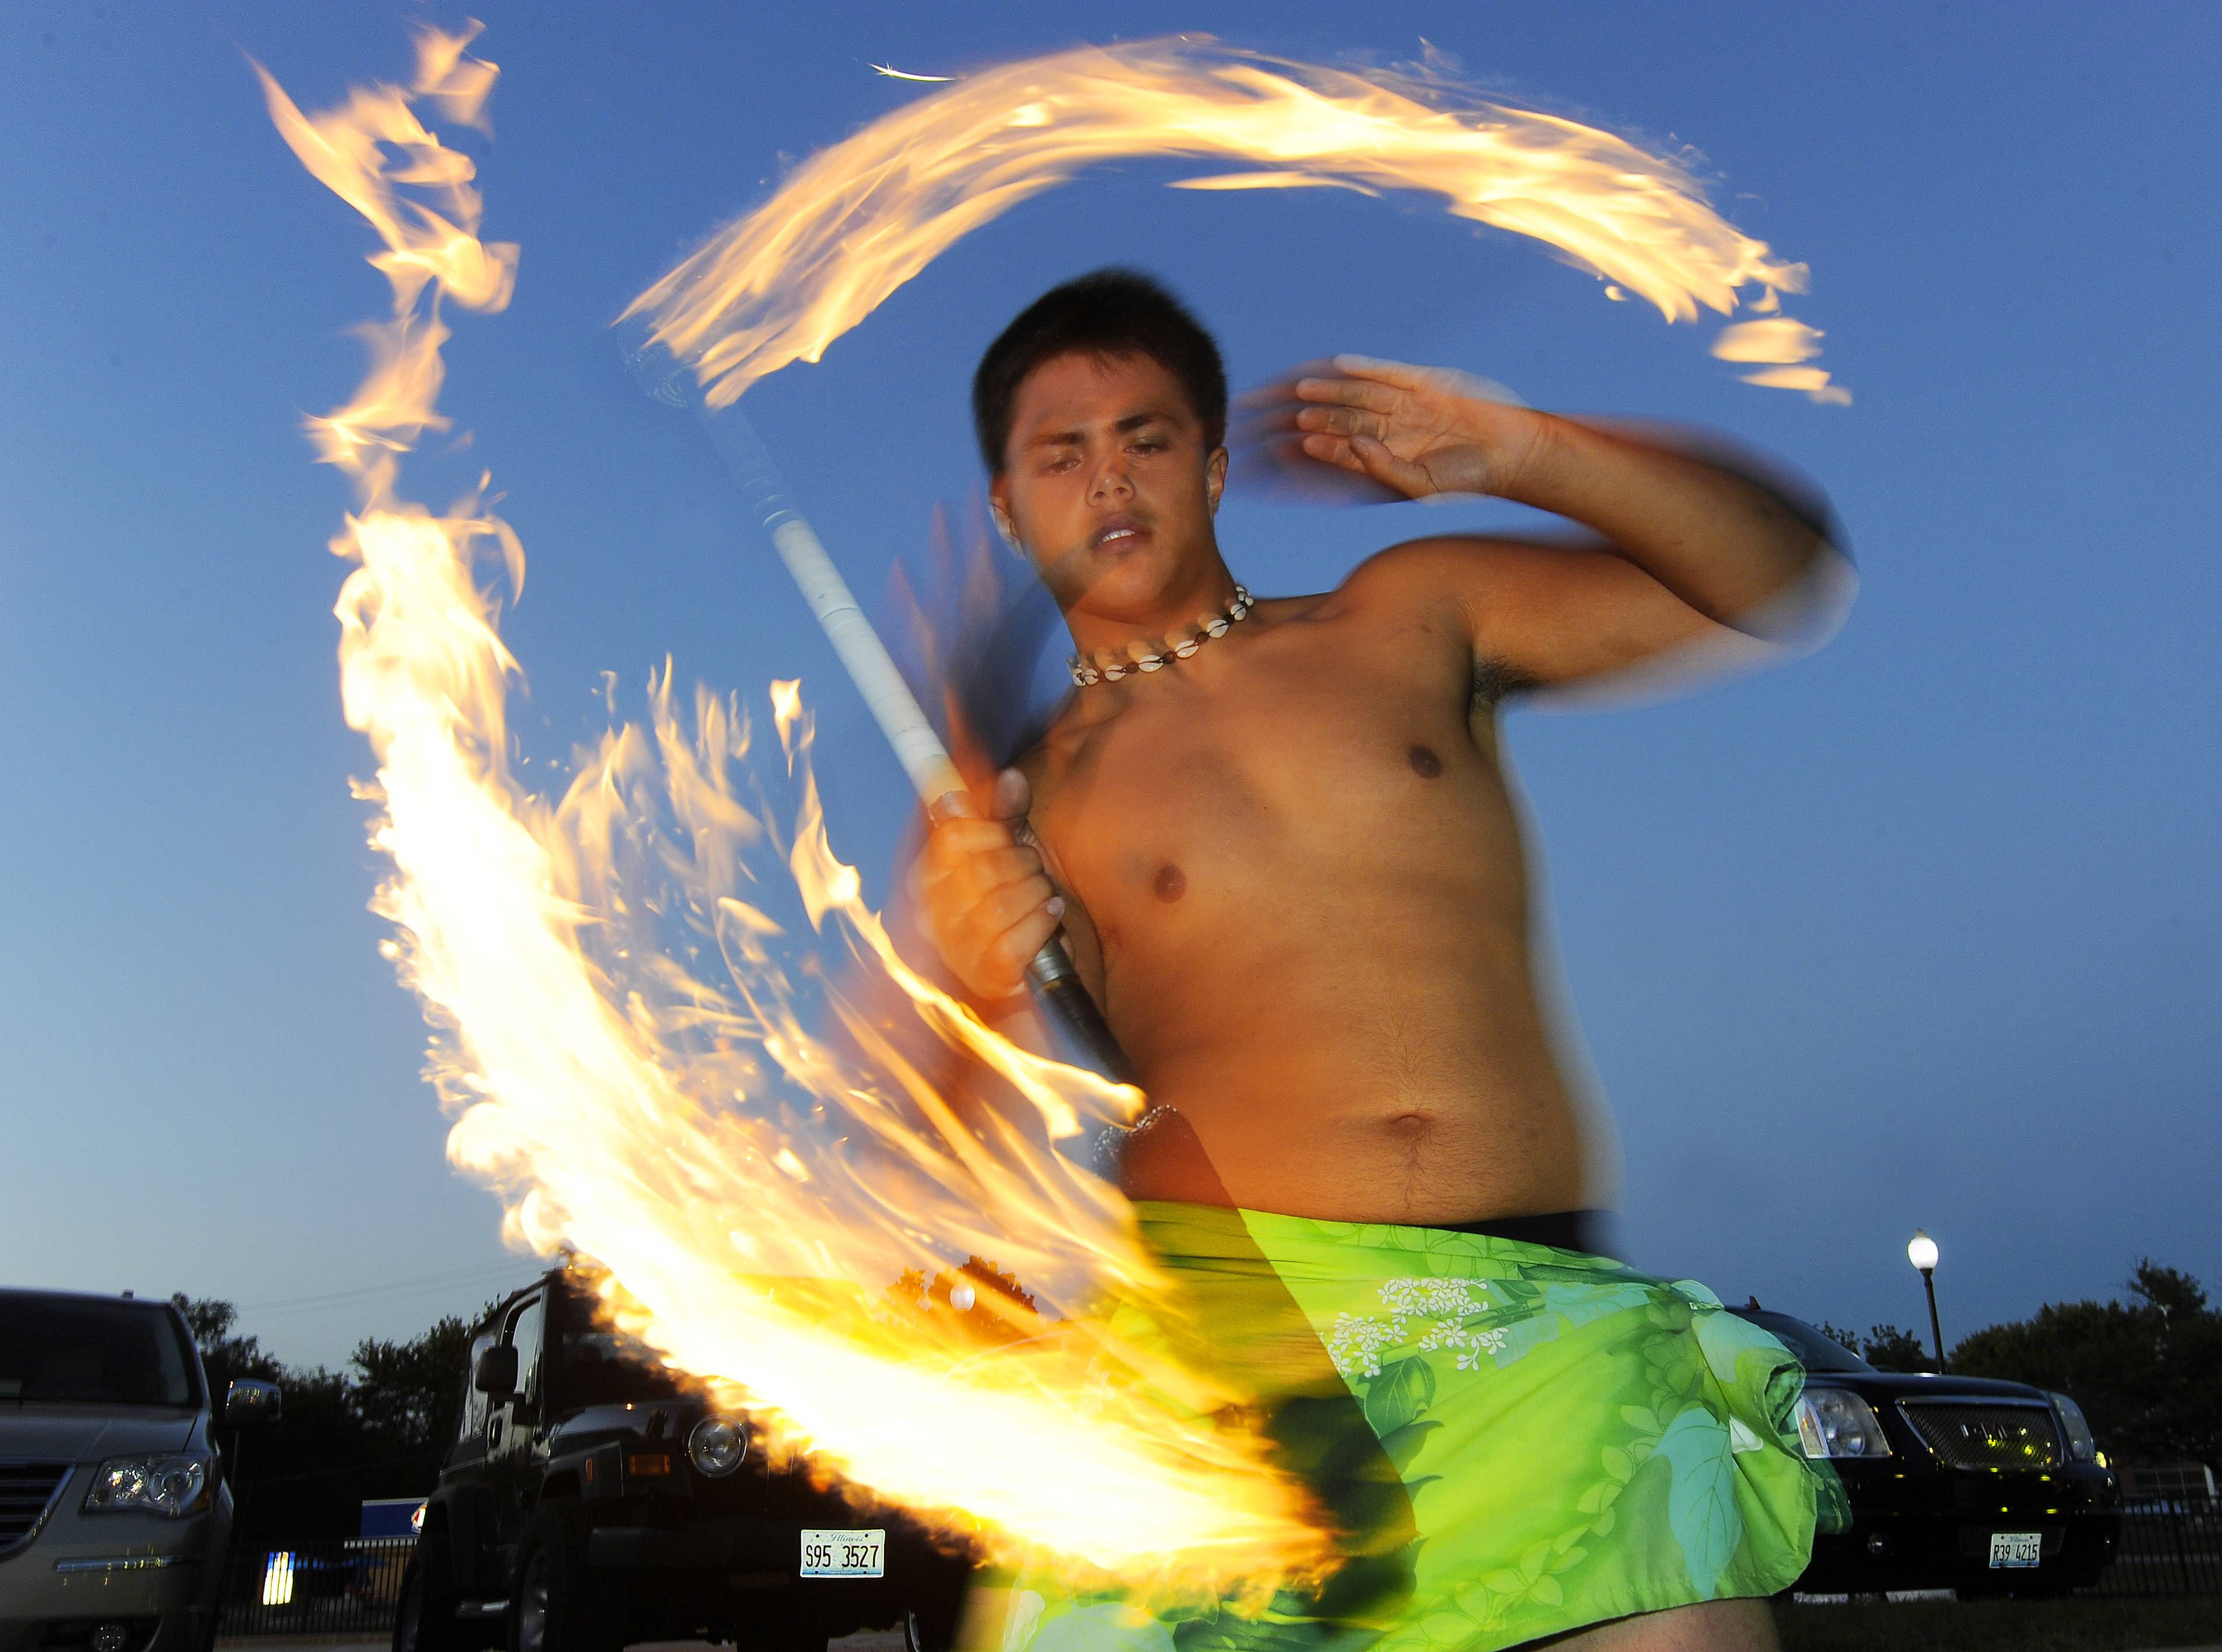 Meet the Maine West football player who moonlights as fire dancer